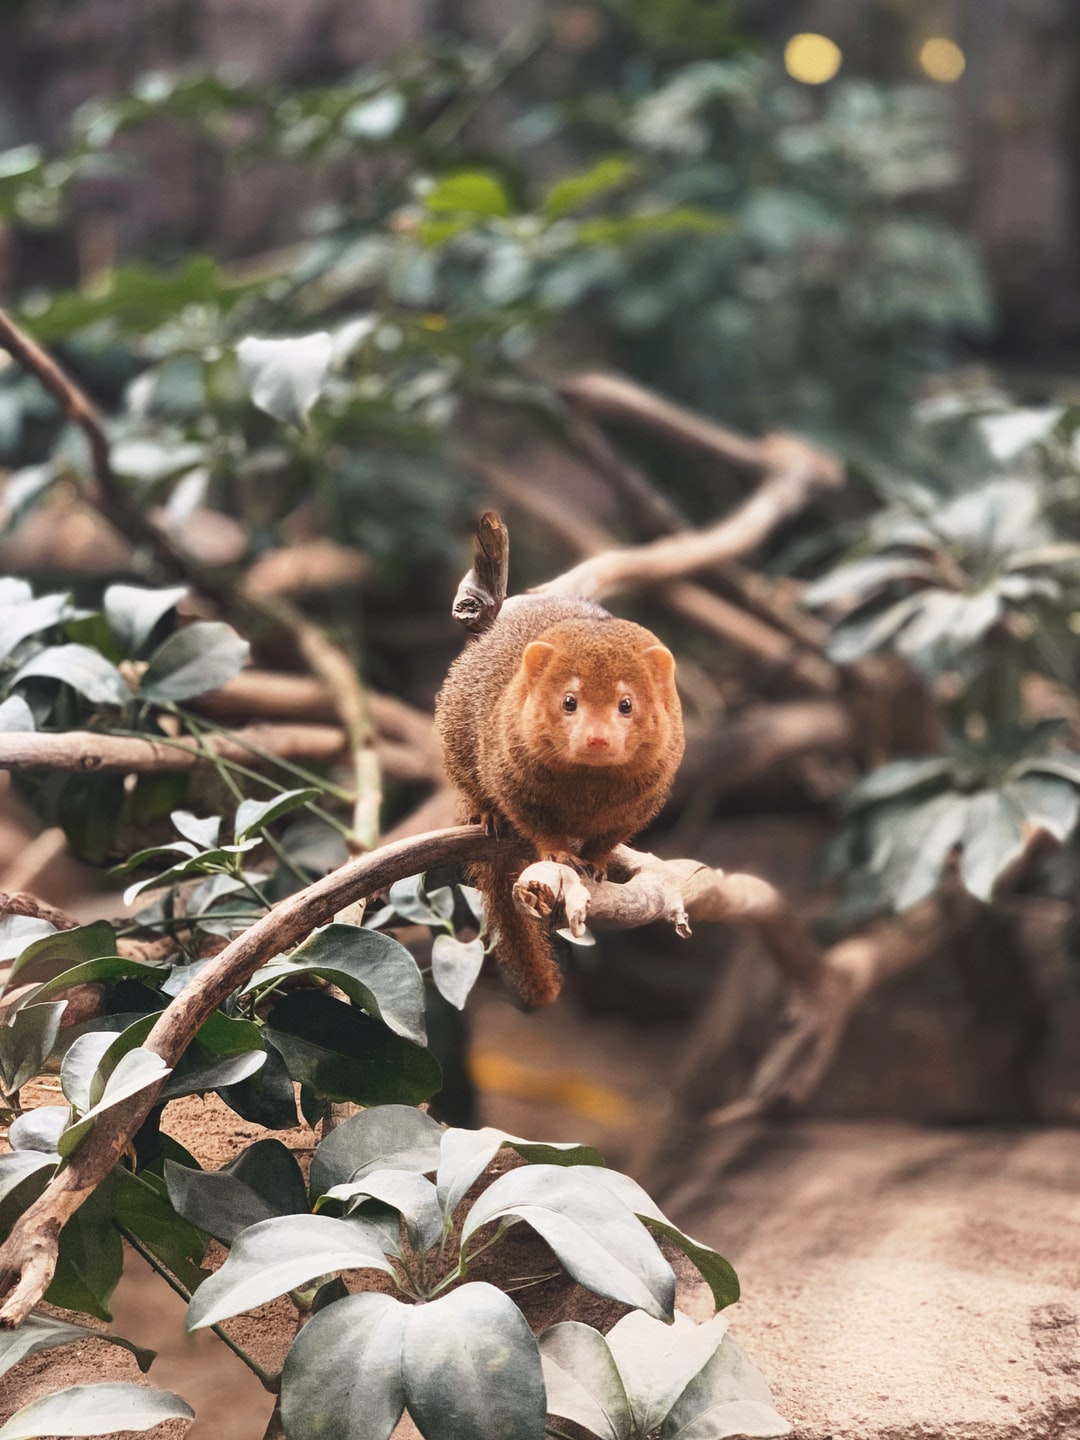 Dwarf mongooses run very fast, so taking a shot of them is very hard. Yet, this one jumped on the branch, stayed still so I could get a good shot.